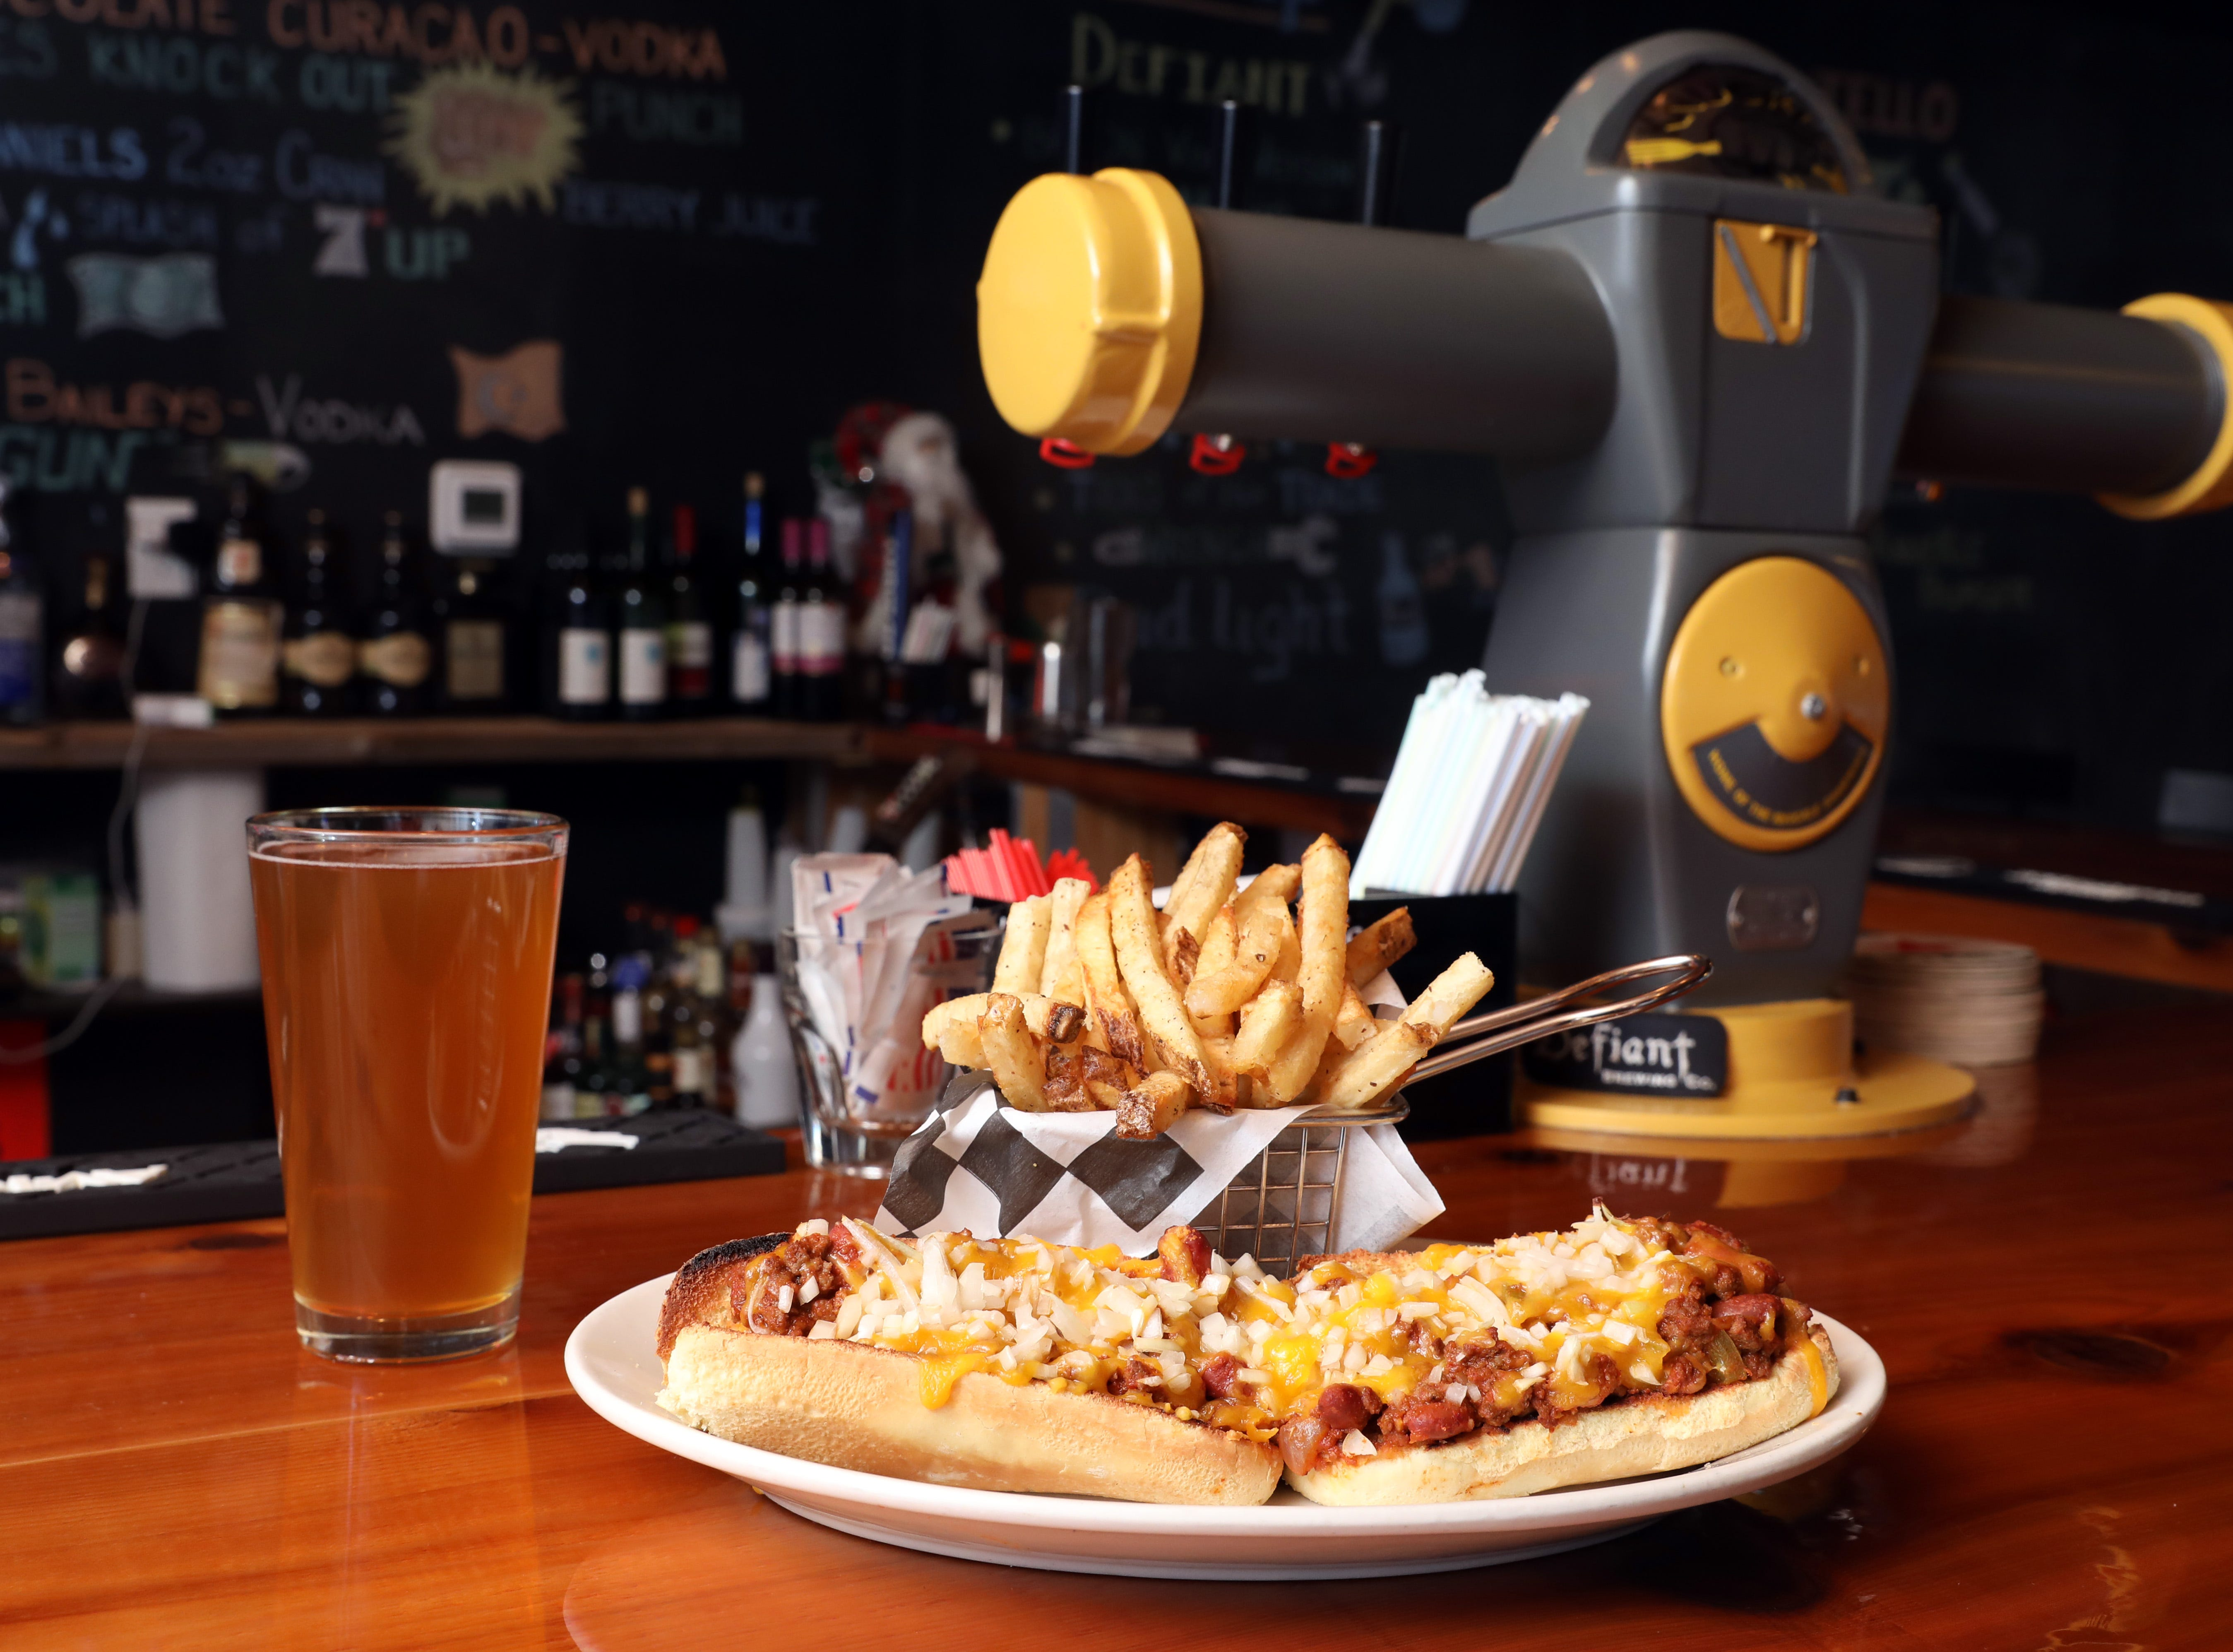 The Chilli Carne Dog at the bar, where the tap is a made from a 1970s New York CityÊparking meter at Knuckles Incorporated, a new restaurant in Stony Point Nov. 26, 2018.